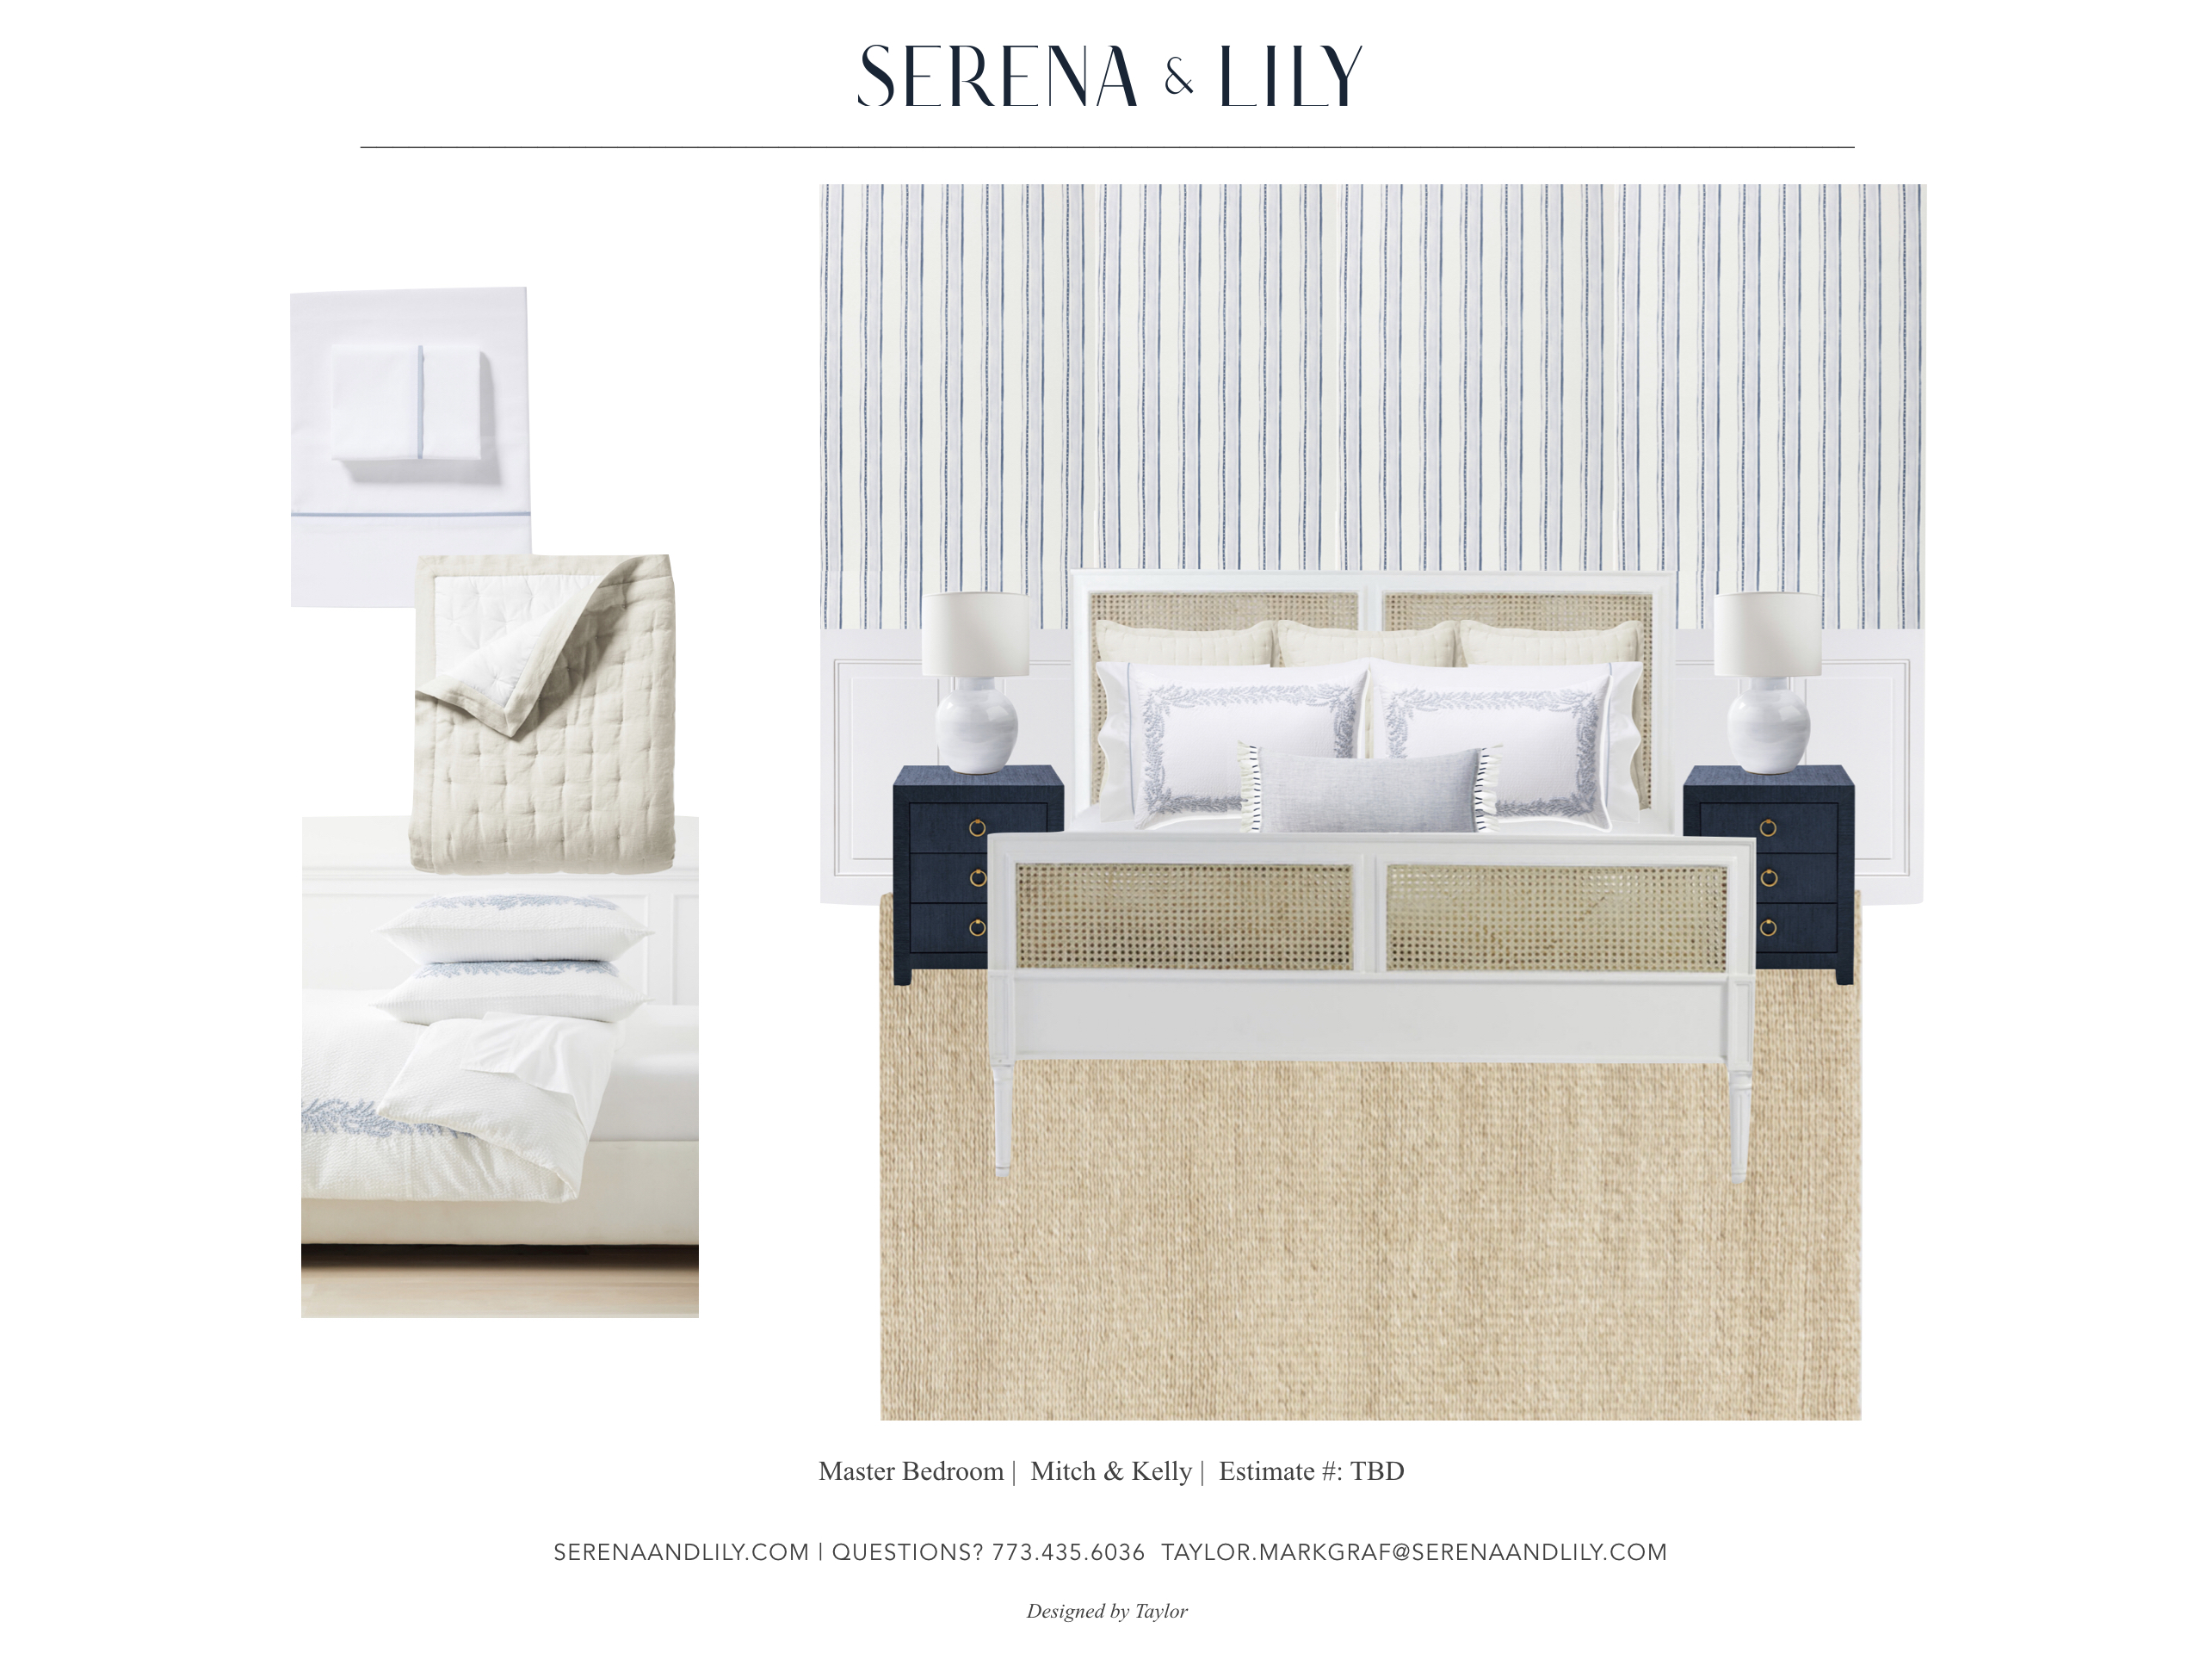 Bedding Ideas with Serena & Lily | Kelly in the City